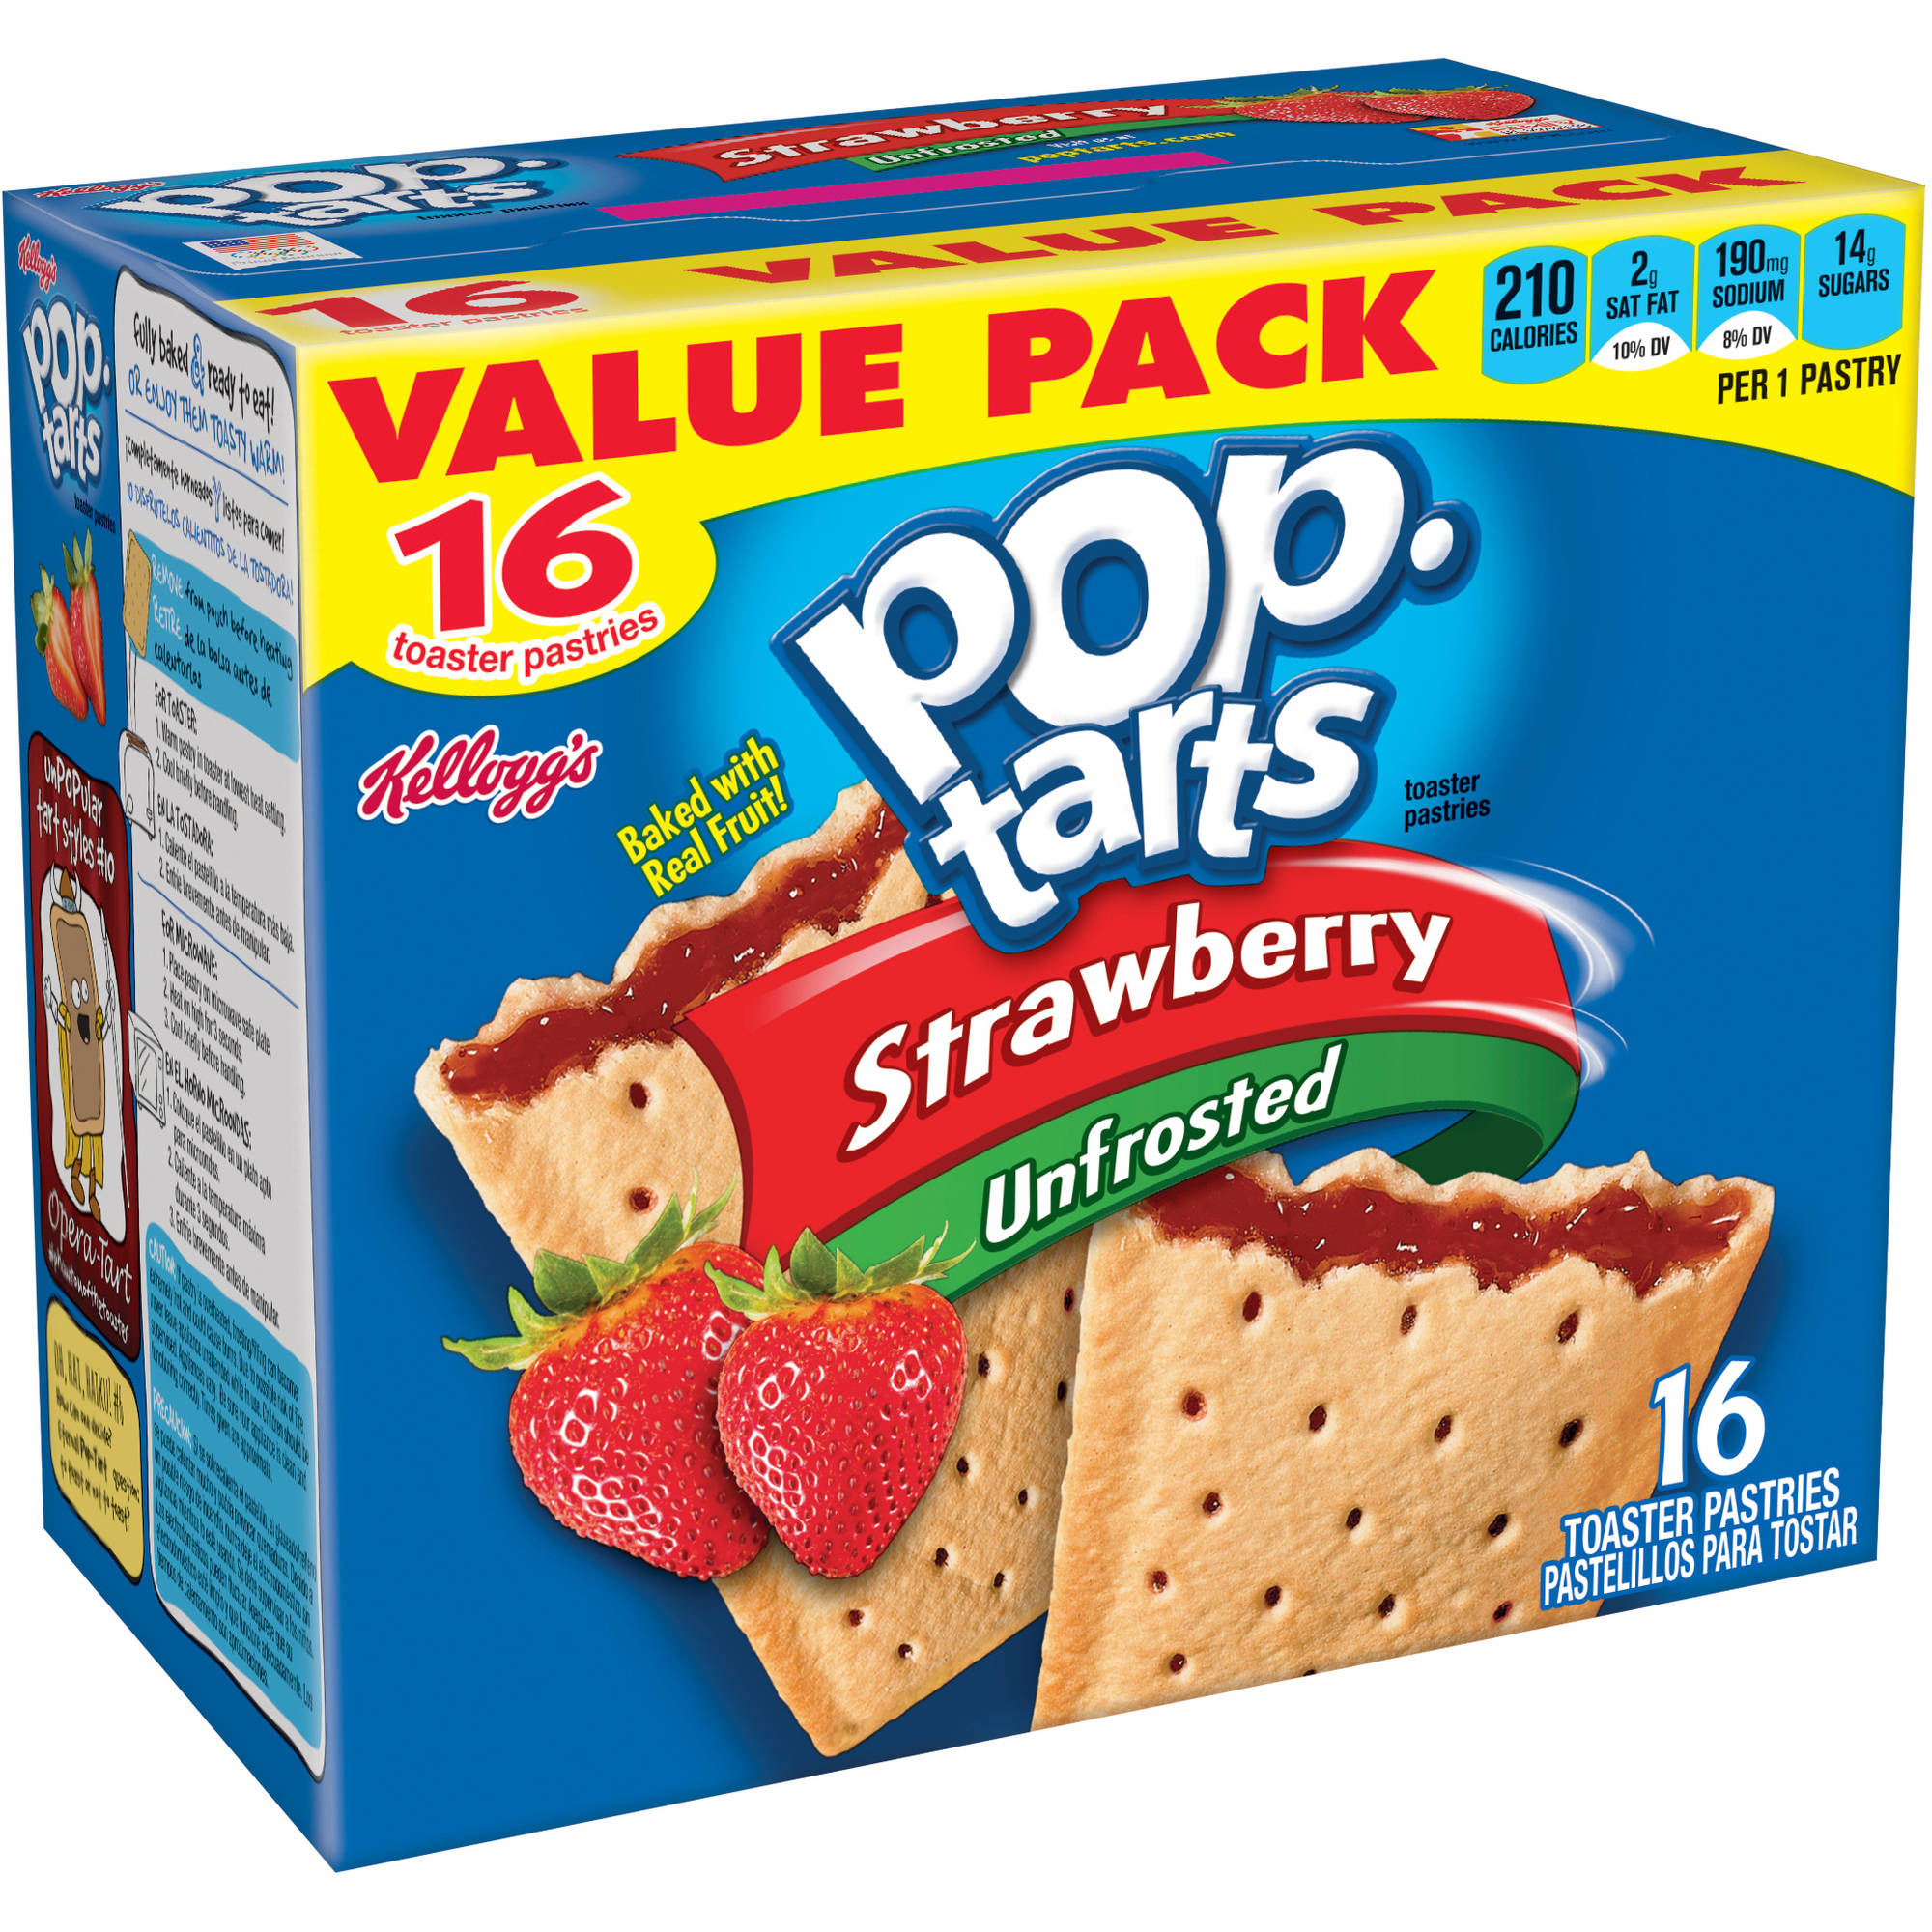 Kellogg's Pop-Tarts Breakfast Toaster Pastries, Unfrosted Strawberry Flavored, Value Pack, 29.3 oz 16 Ct